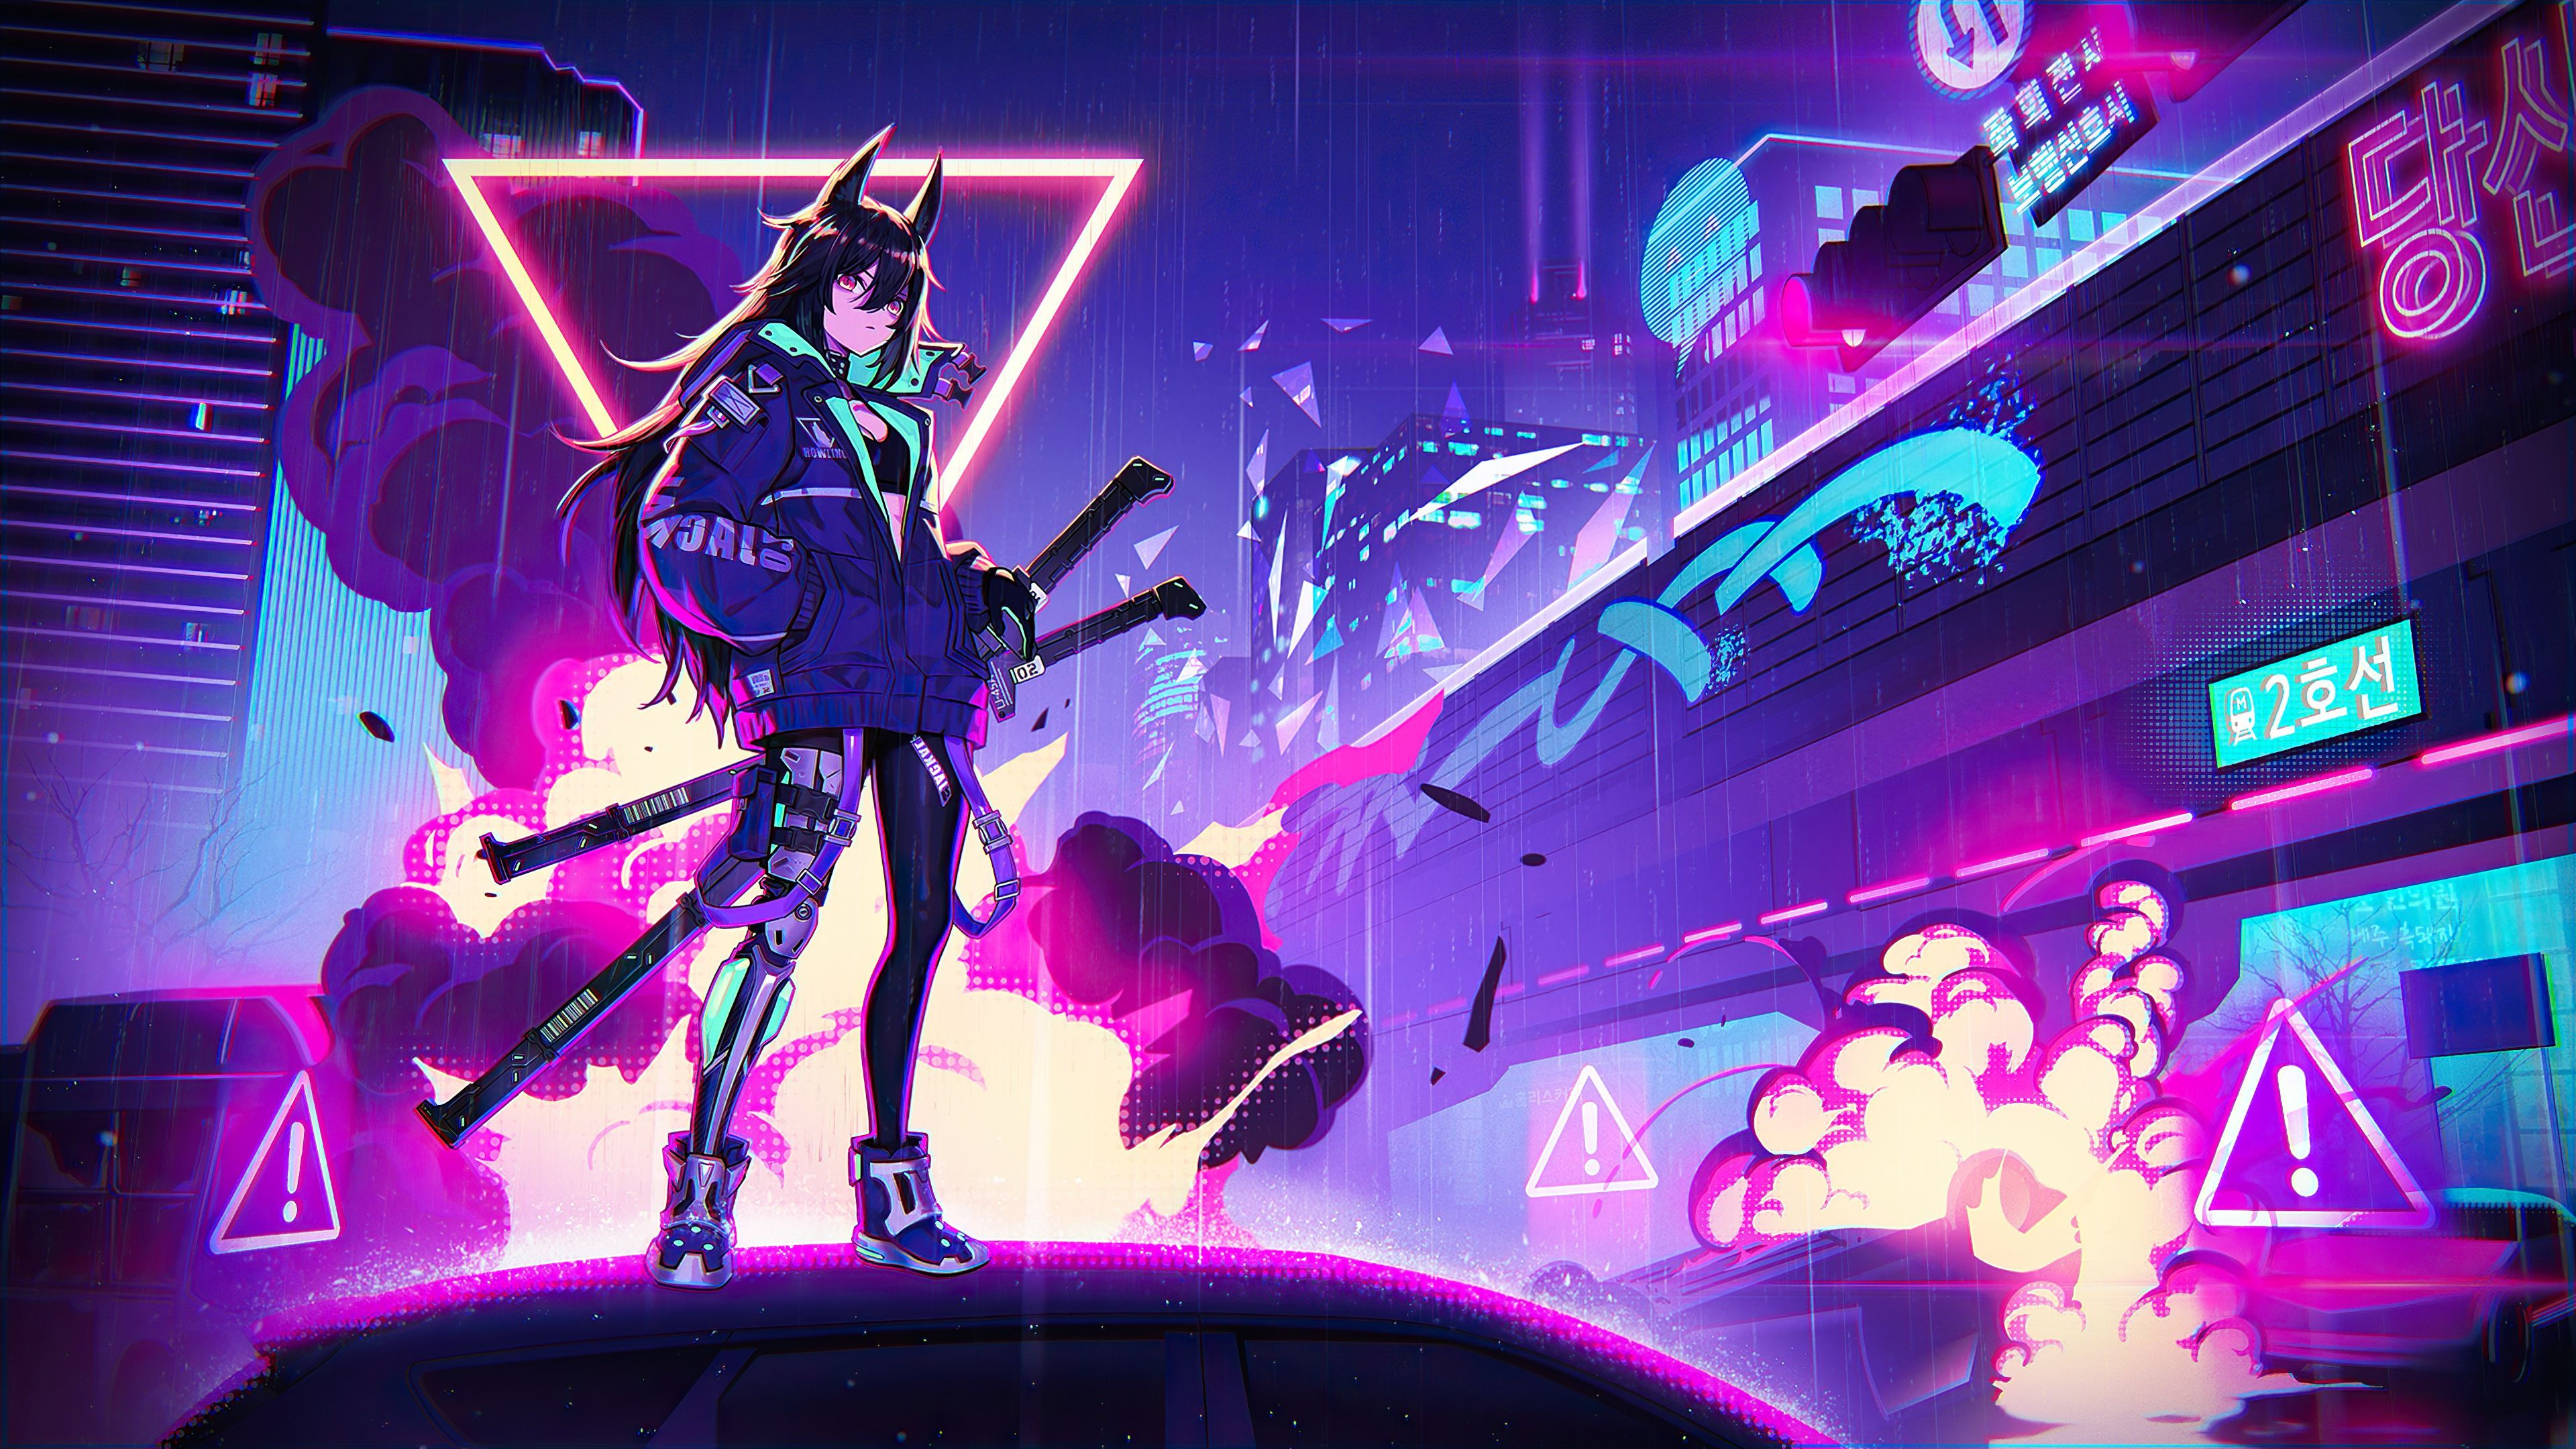 Neon Anime Wallpapers   Top Neon Anime Backgrounds 3840x2160